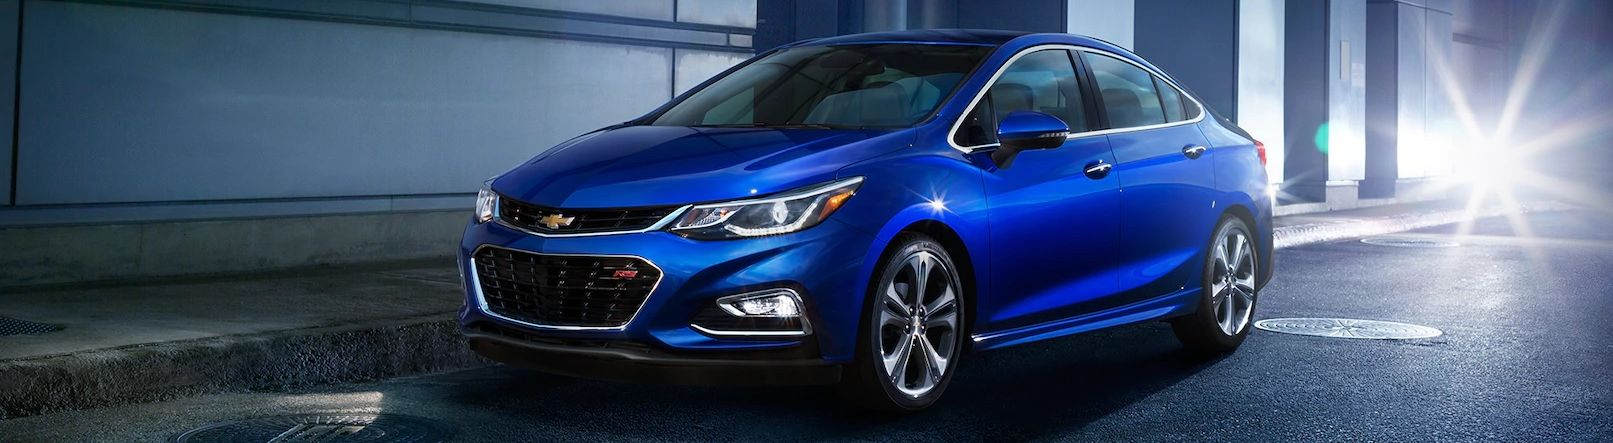 2018 Chevrolet Cruze Financing in Chicago, IL